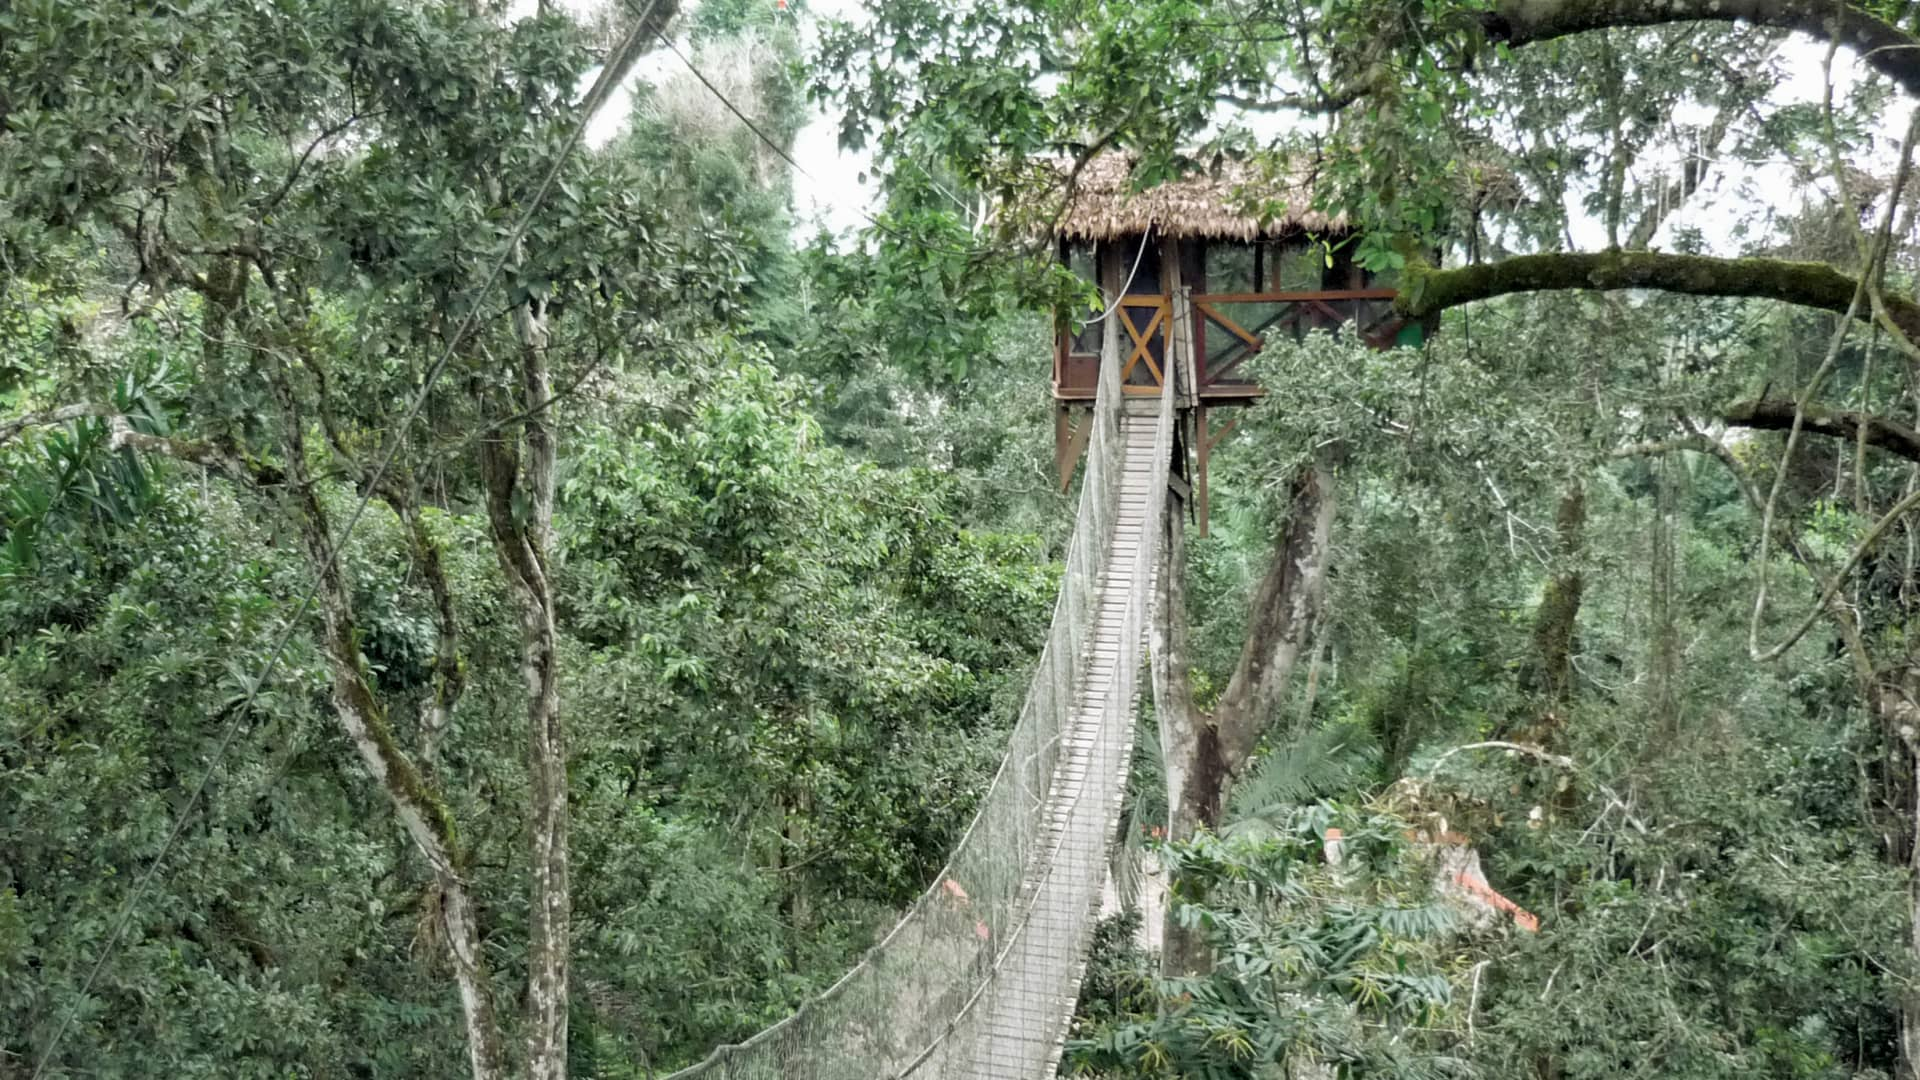 Guests at Peru's Inkaterra Reserva Amazonica treehouse sleep 70 feet above the rainforest floor.